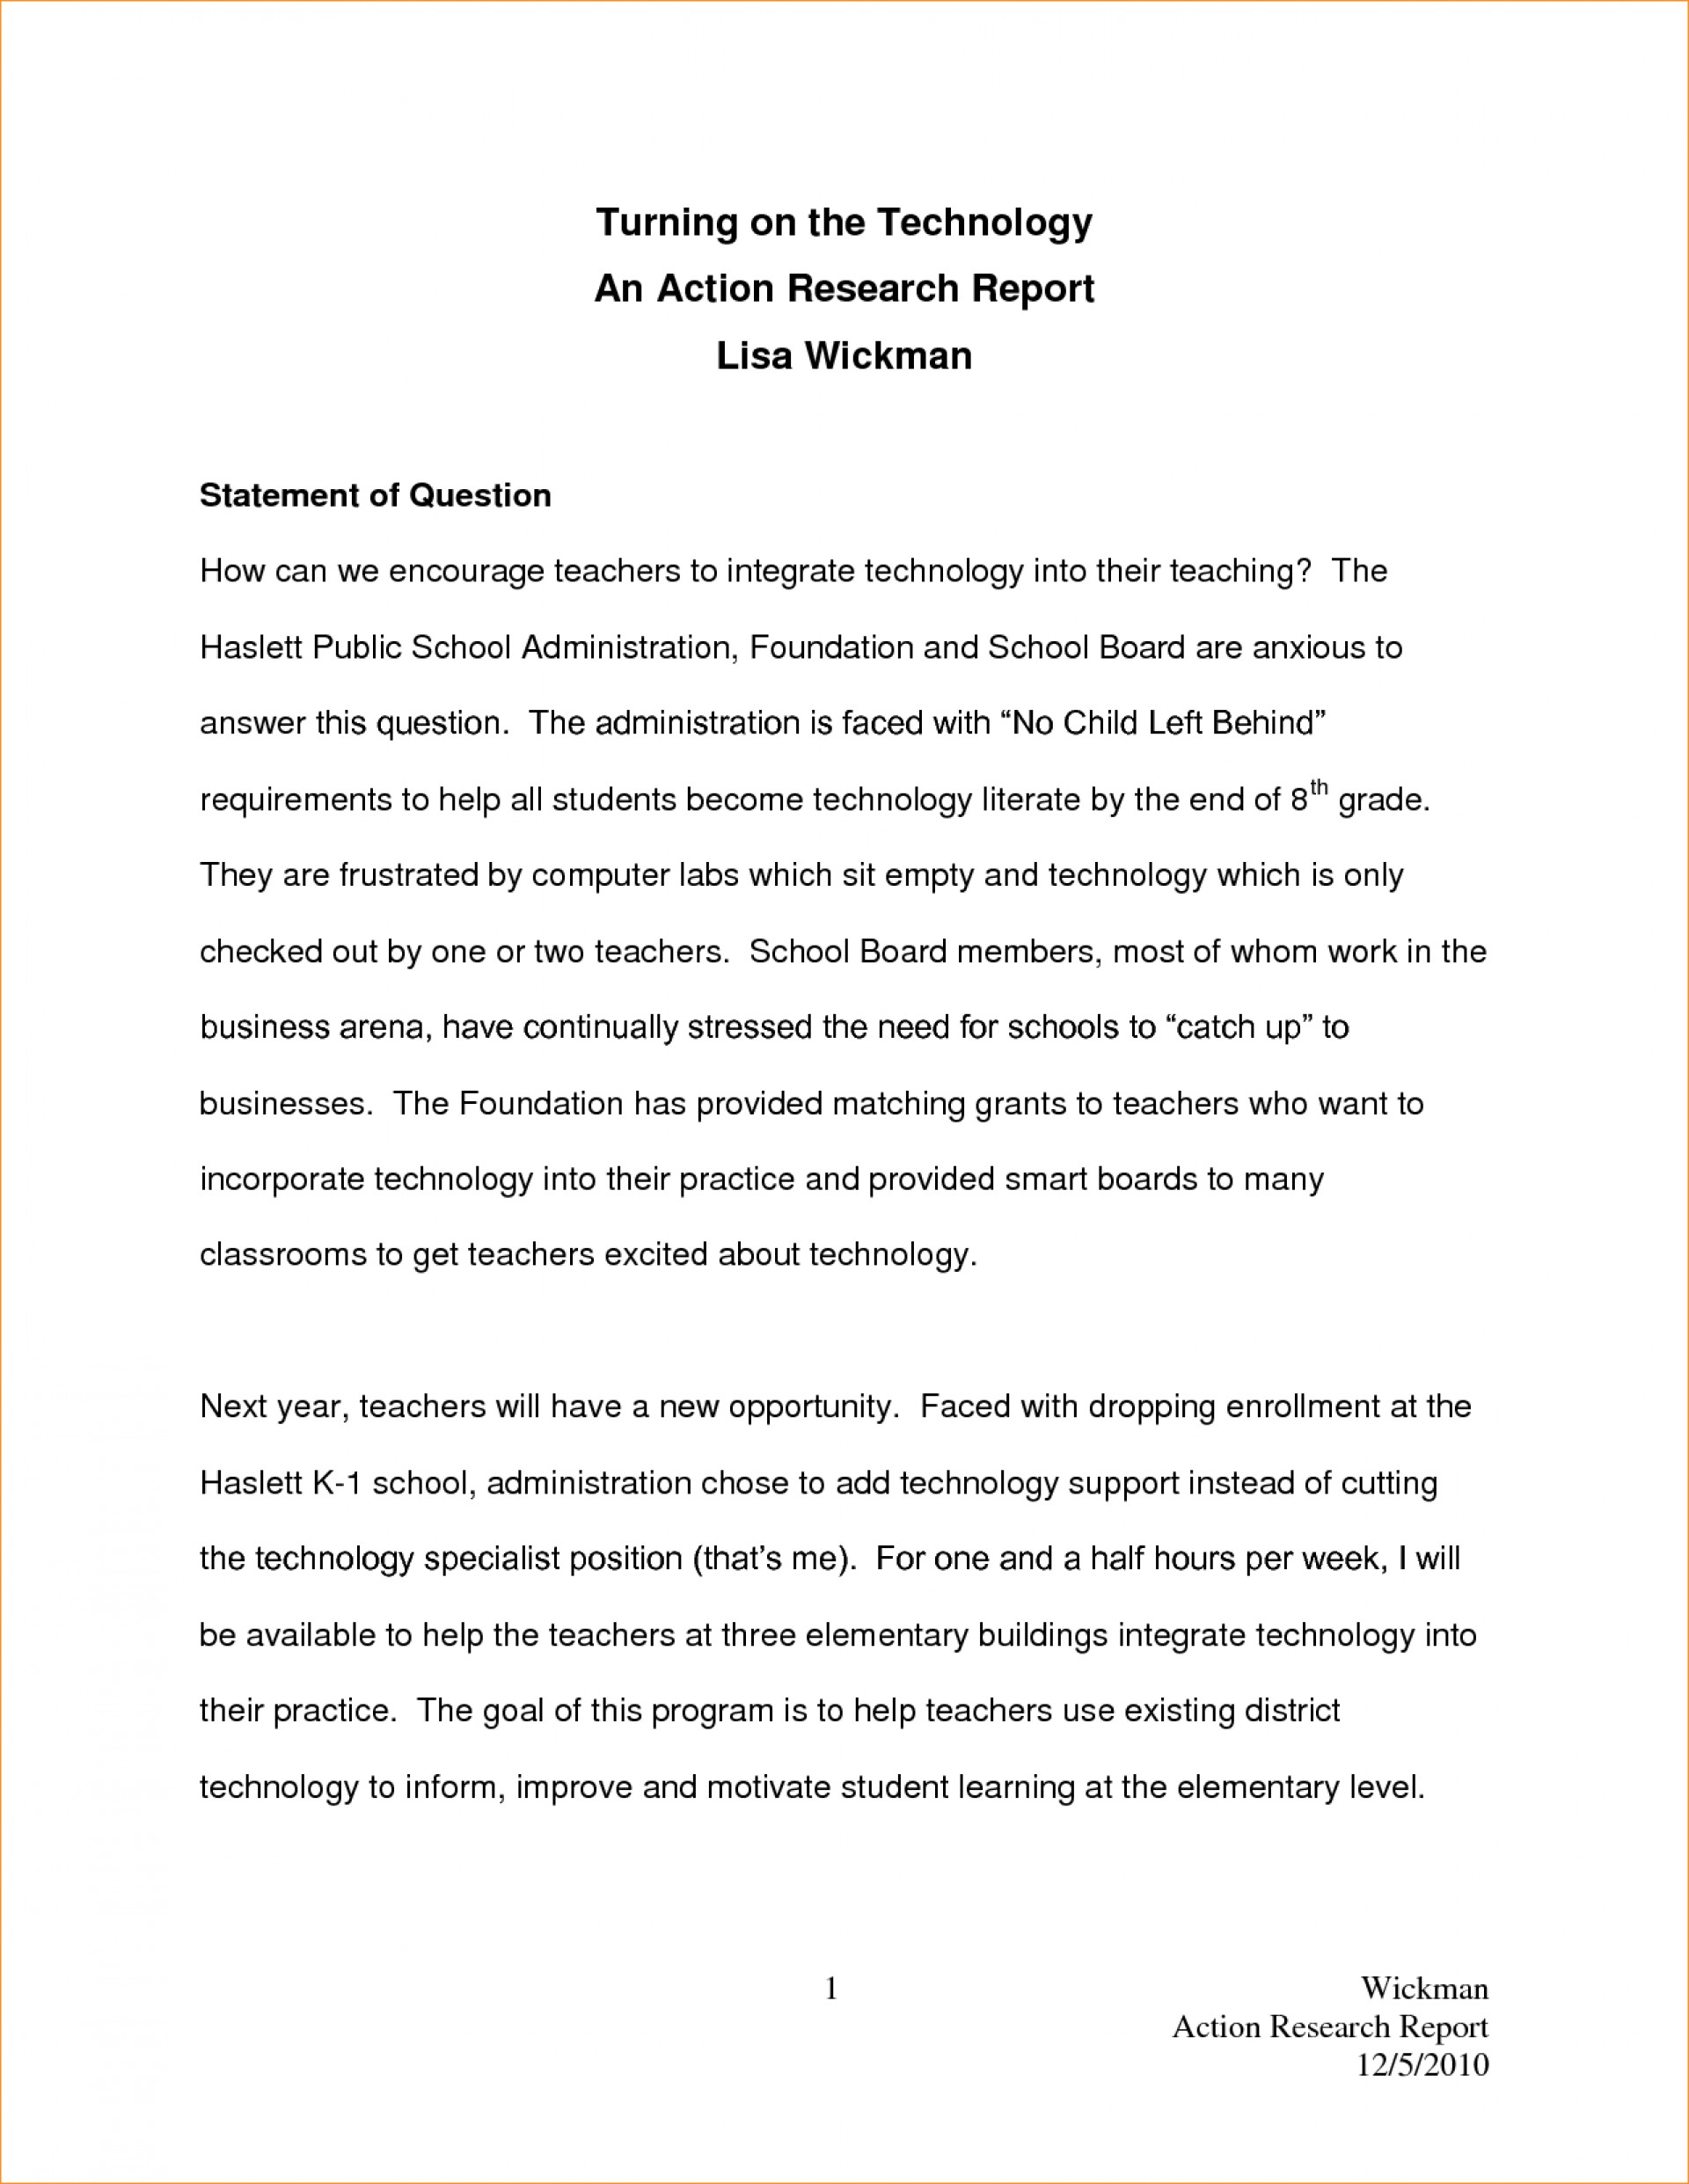 007 Proposals Examples Essay Example How To Write Remarkable A Proposal Research Paper In Mla Format Persuasive Pdf 1920